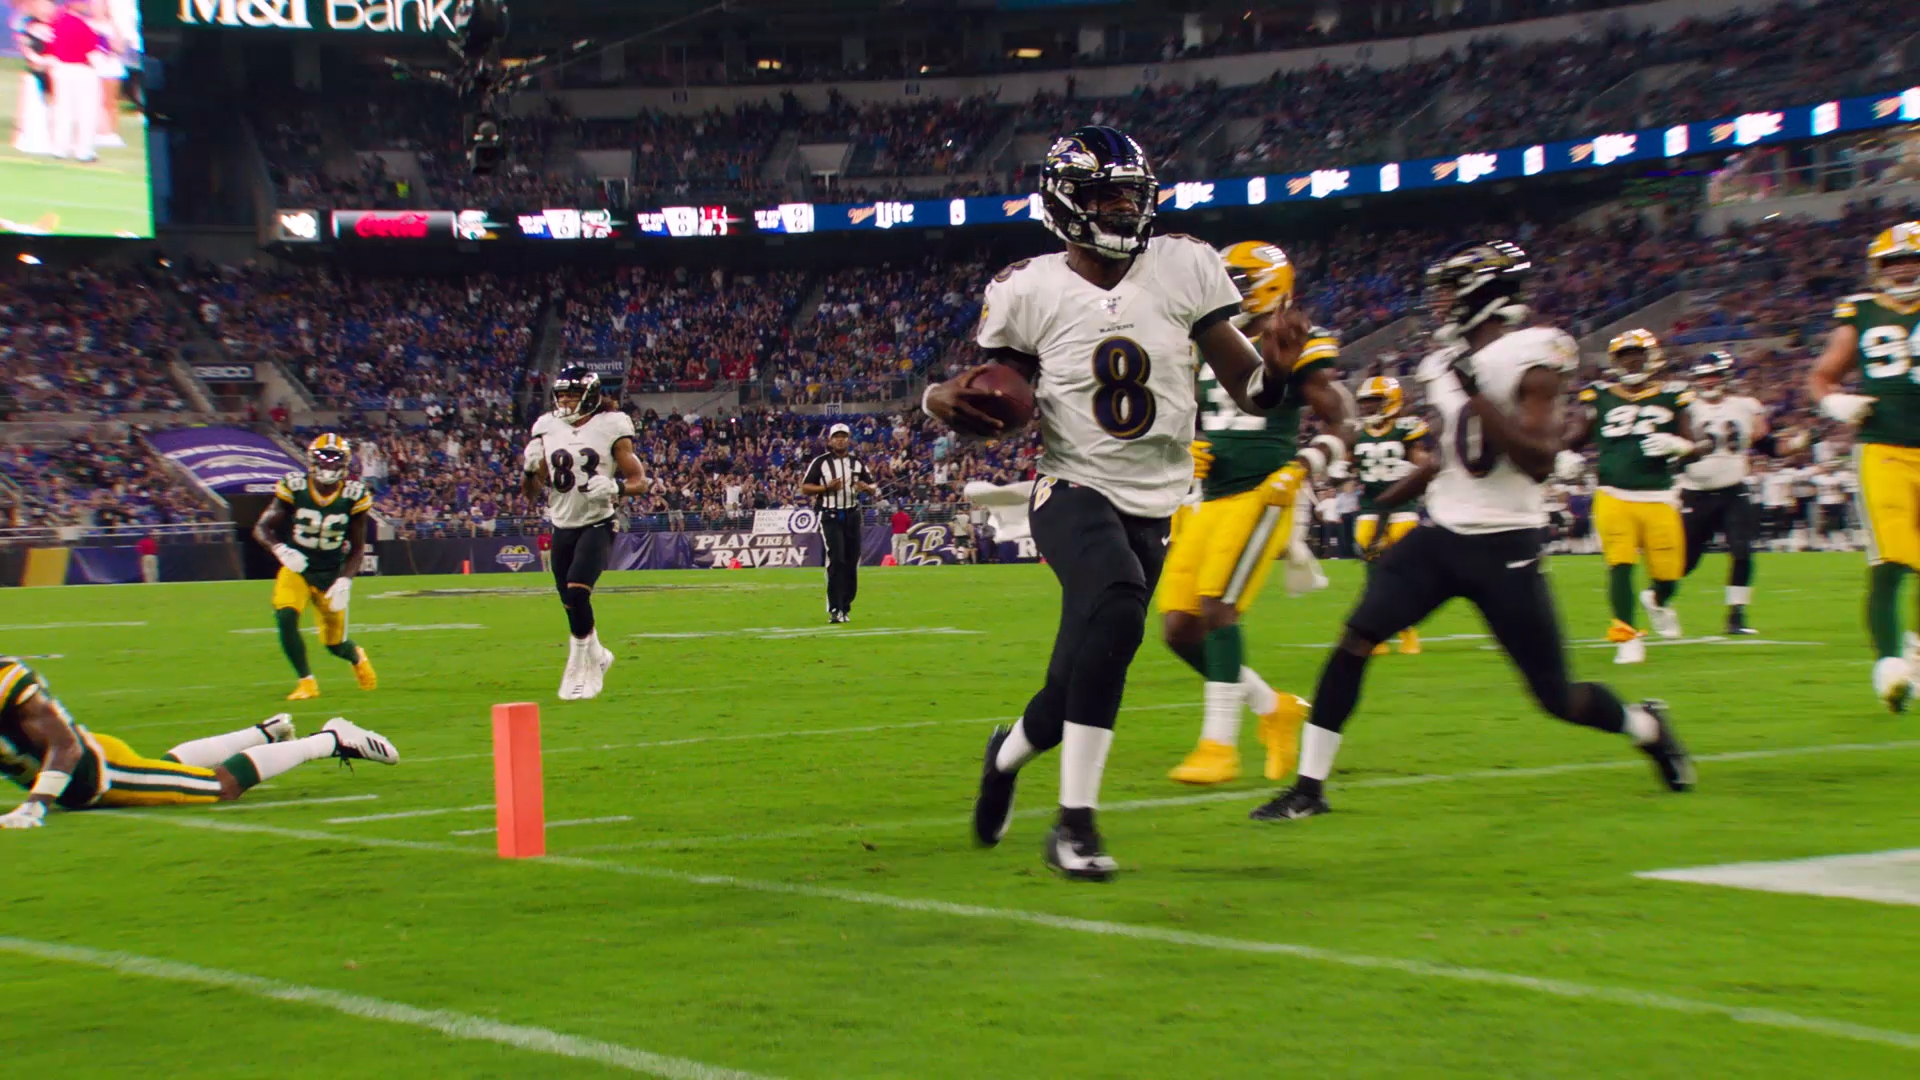 Ravens Final Drive: What to expect in third preseason game